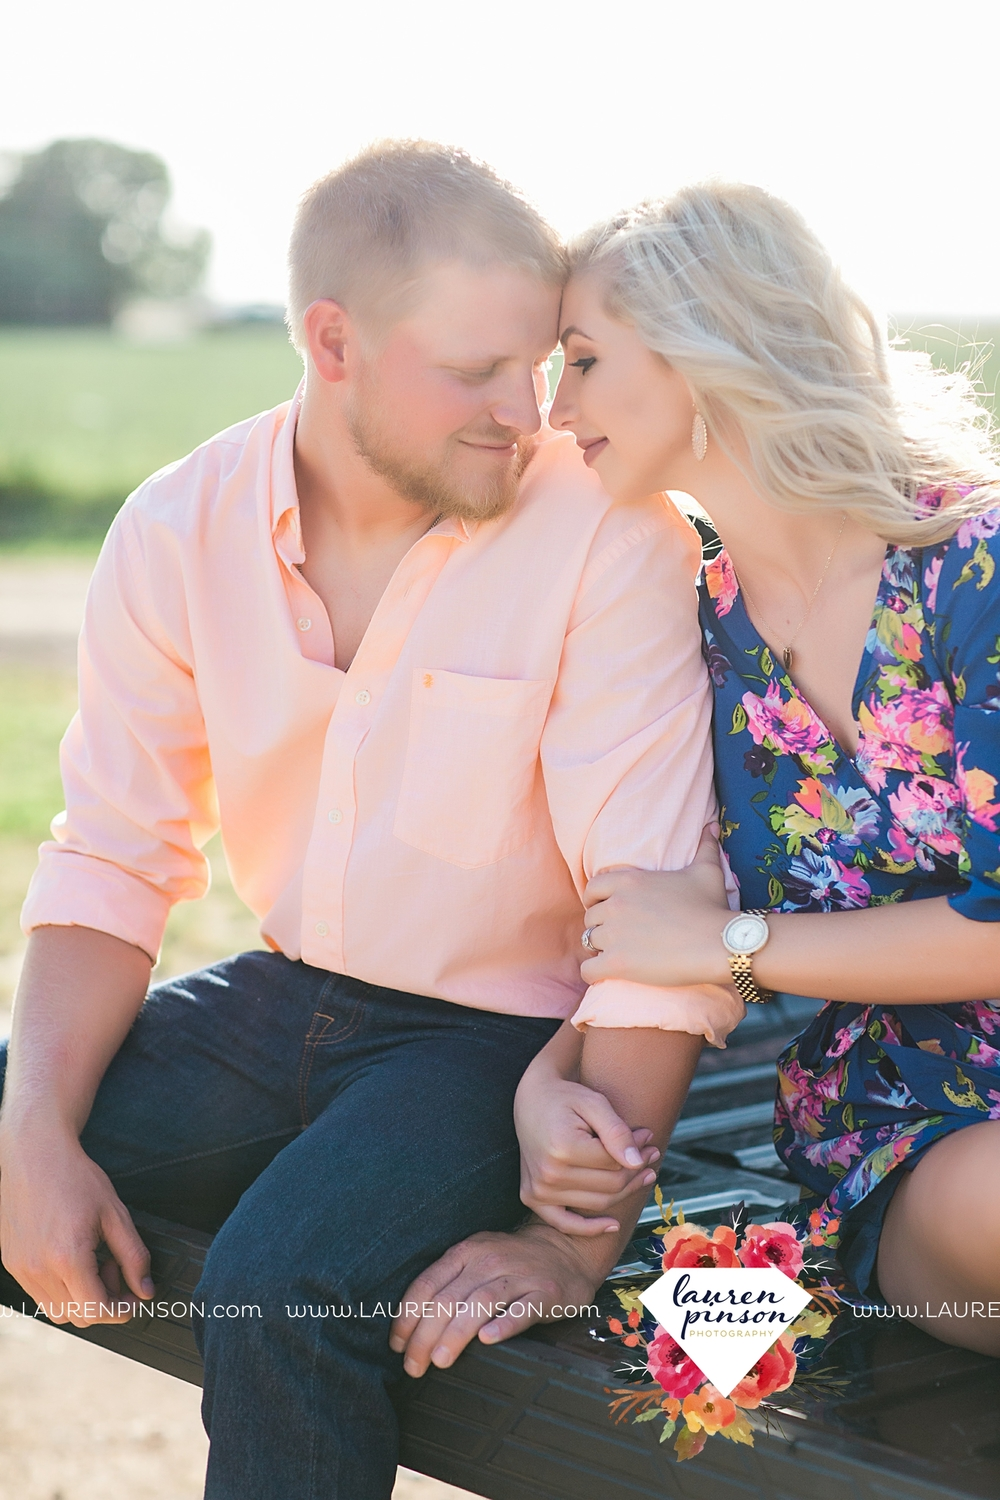 wichita-falls-texas-wedding-photographer-scotland-texas-engagement-session-country-barn-field-windthorst_2740.jpg